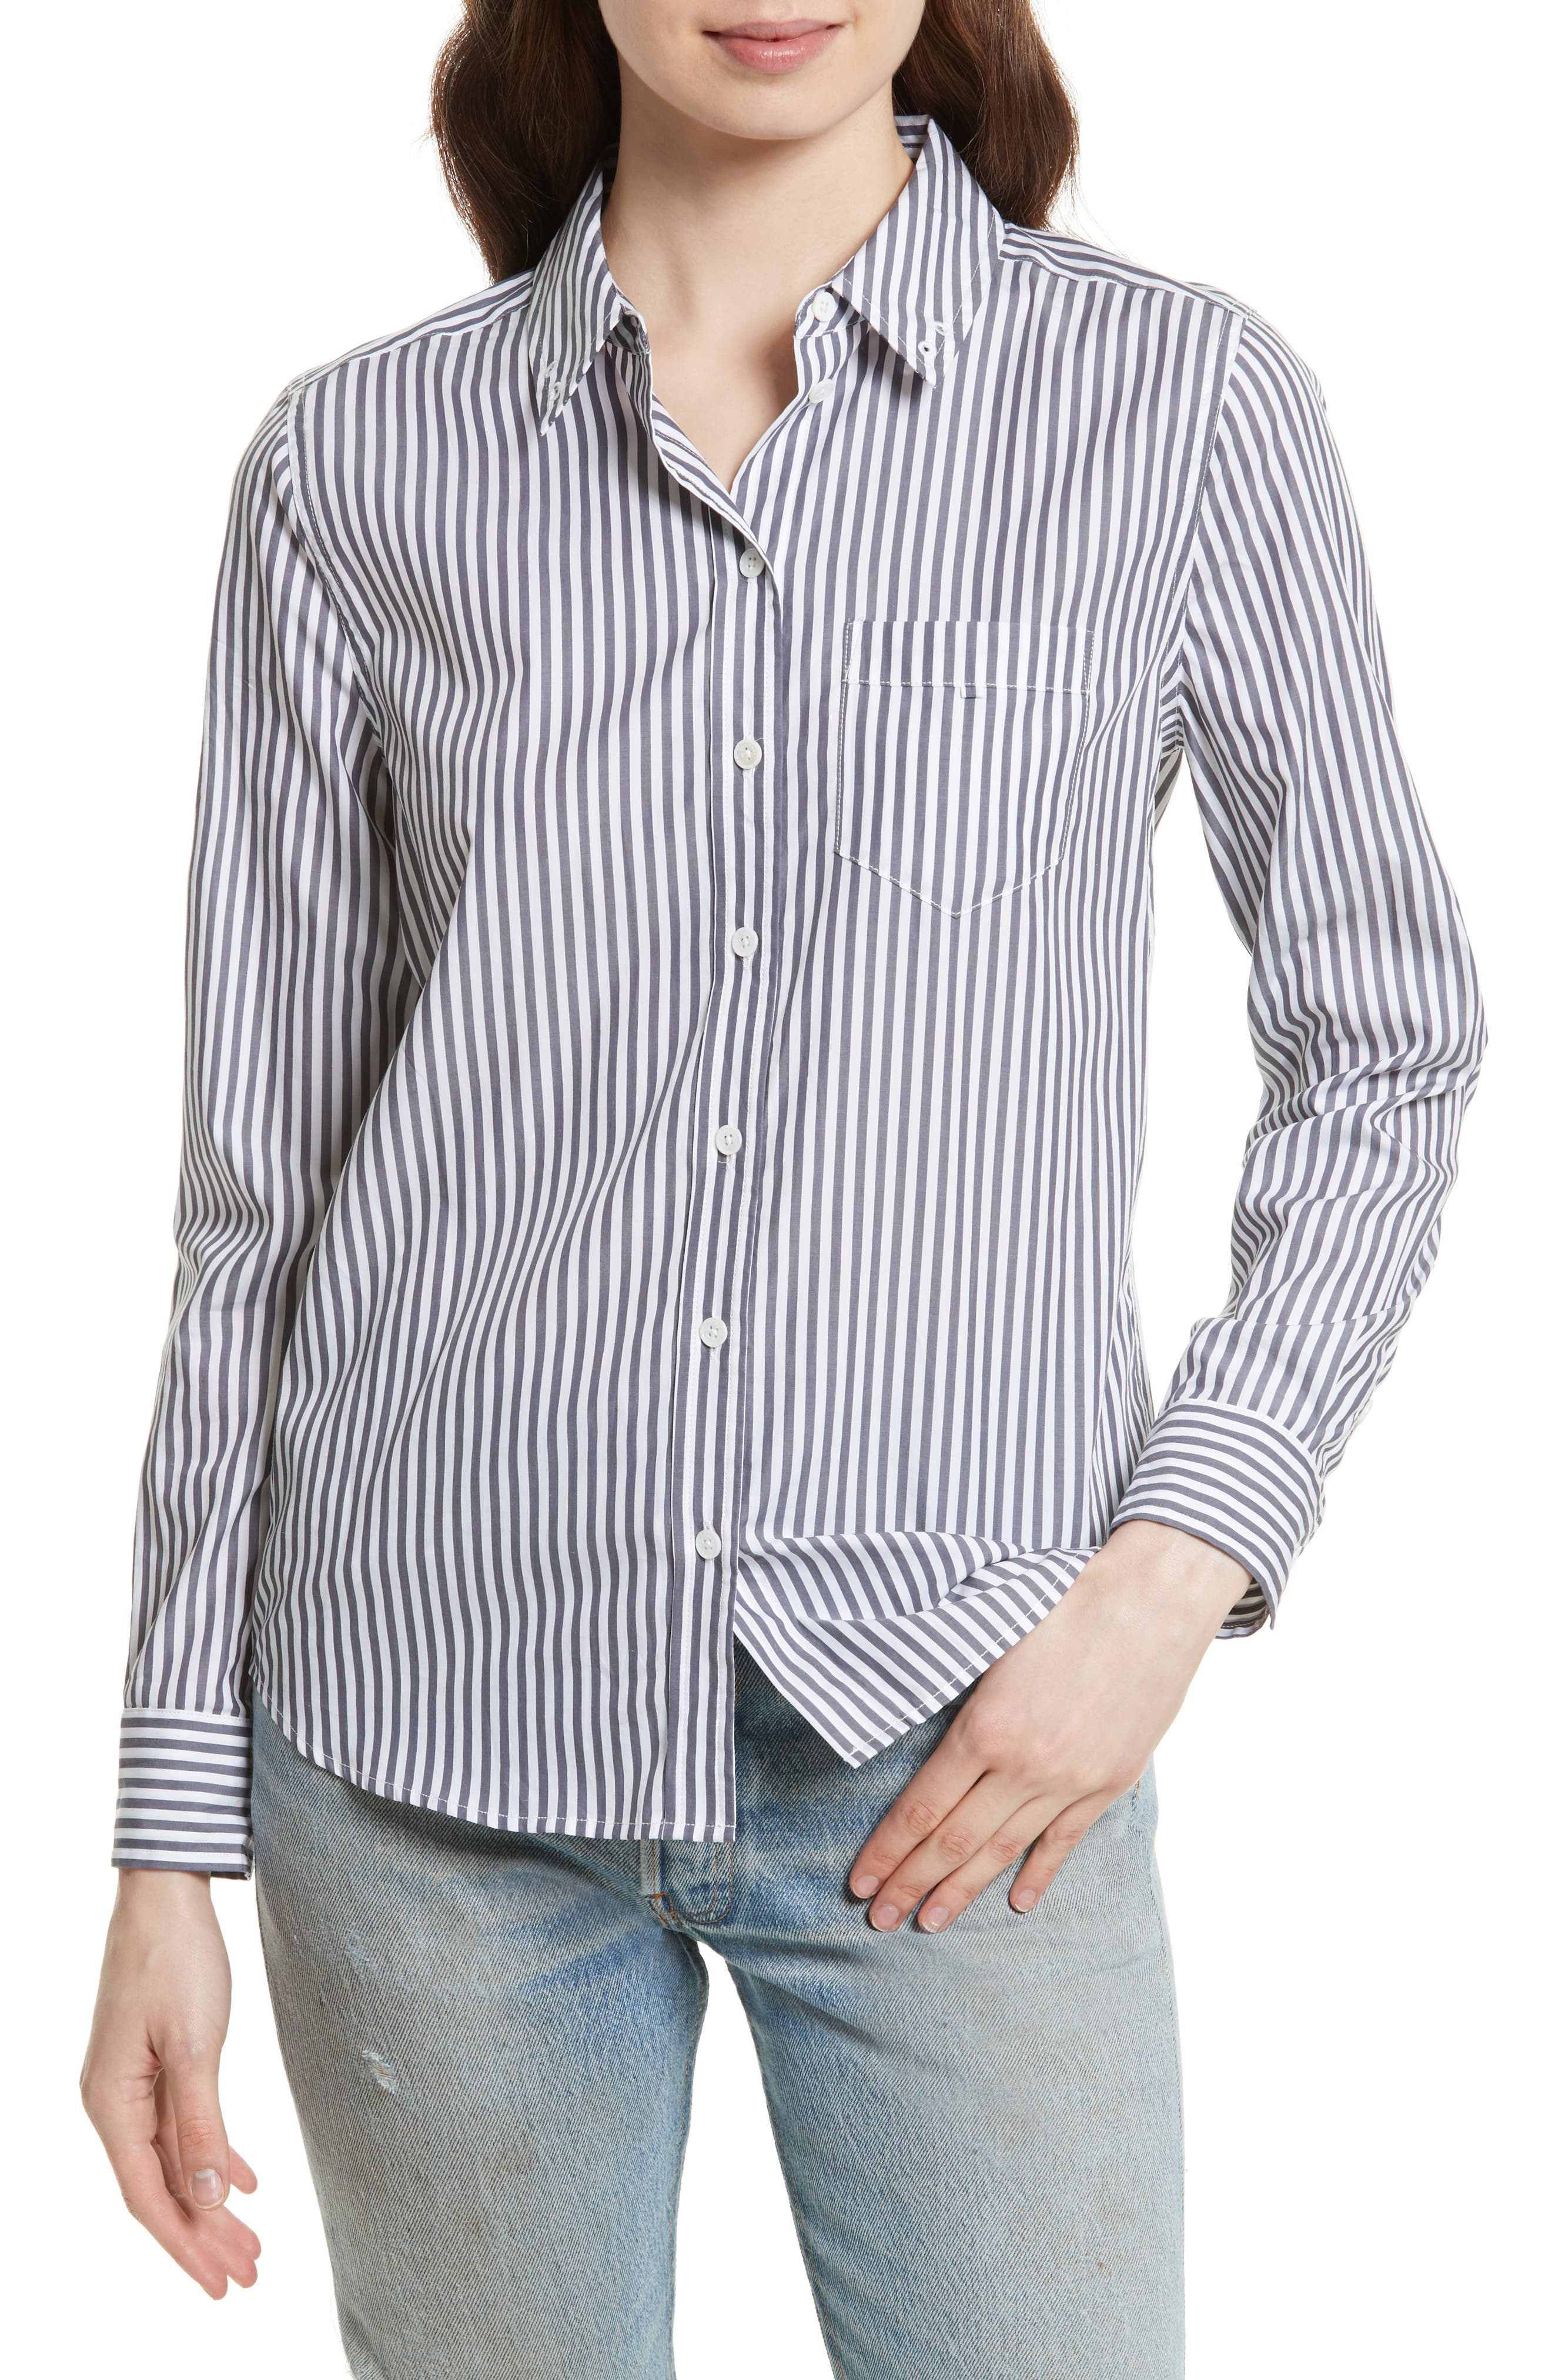 Alternate Image 1 Selected - Equipment Brett Embroidered Stripe Cotton Shirt